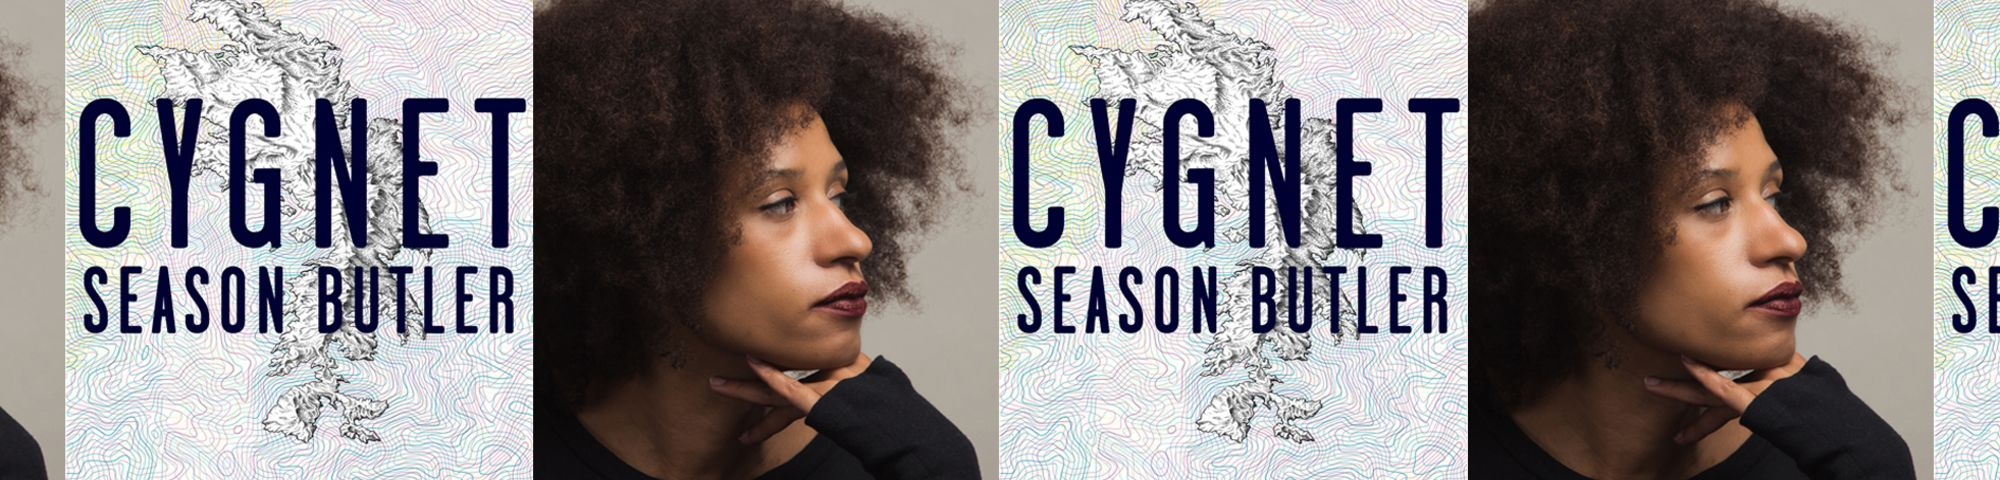 Photographic portrait of Season Butler AND book cover of Season Butler's novel, Cygnet. Repeat pattern.